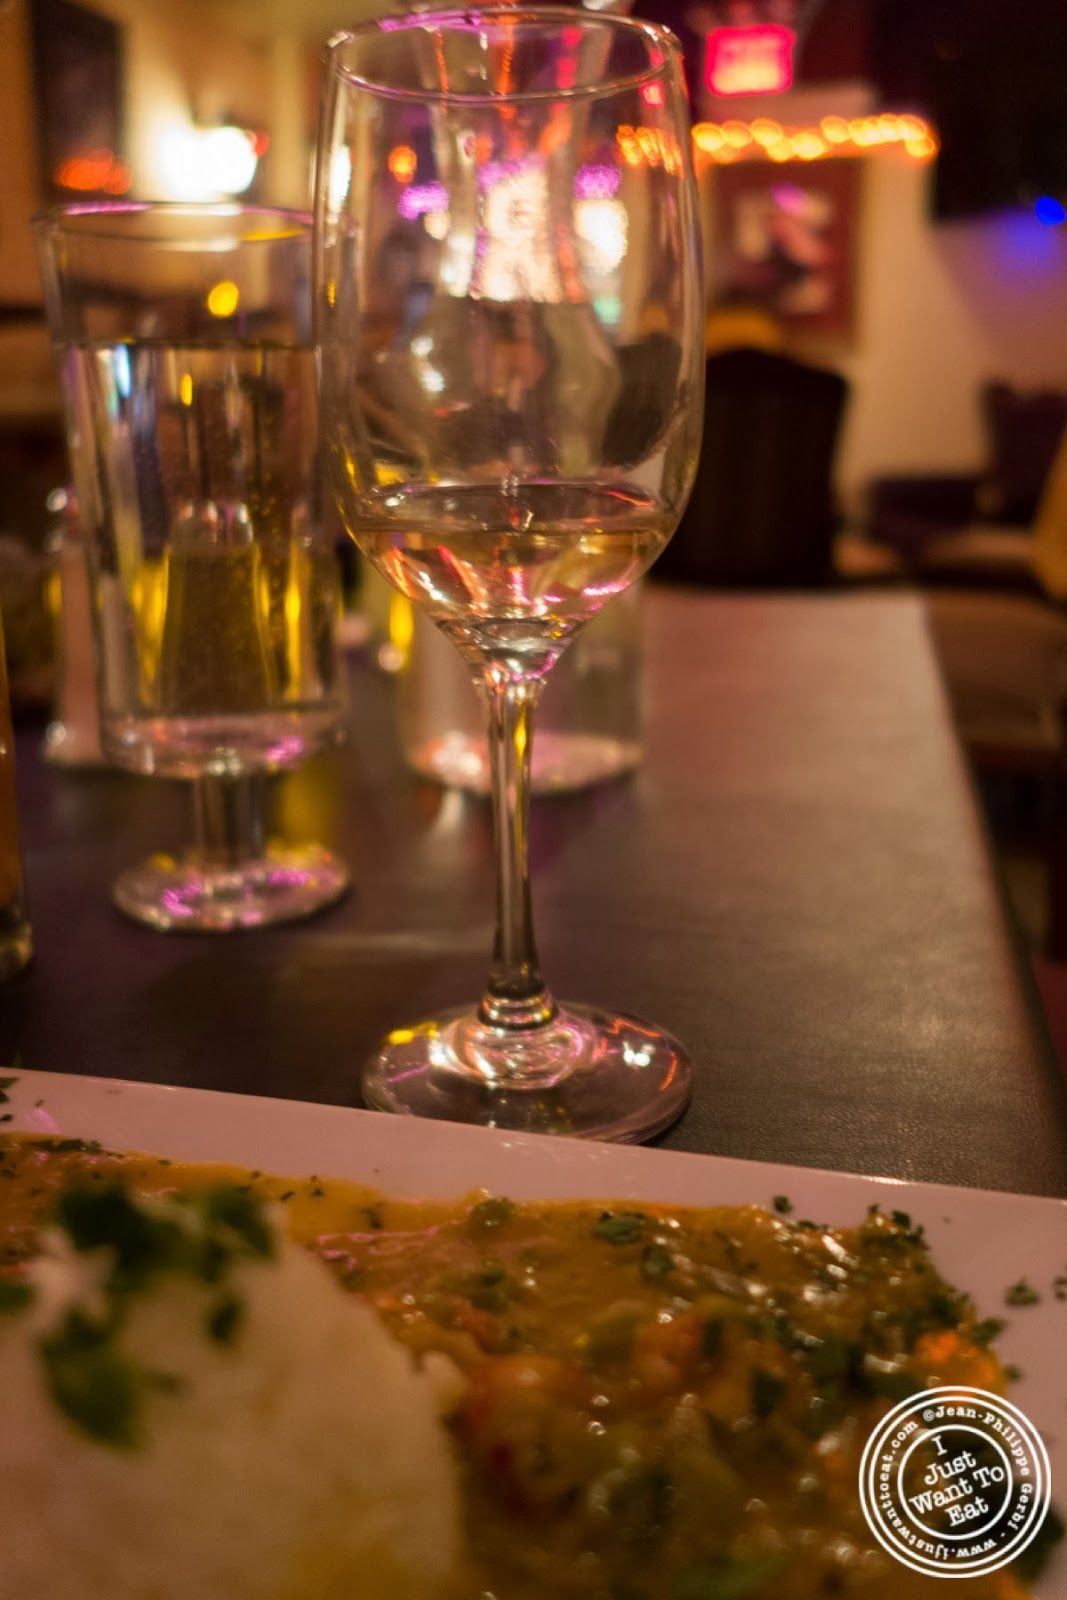 image of Venezia Giulia 2012 Sauvignon Blanc from Italy at MASQ New Orleans inspired cuisine in NYC, New York